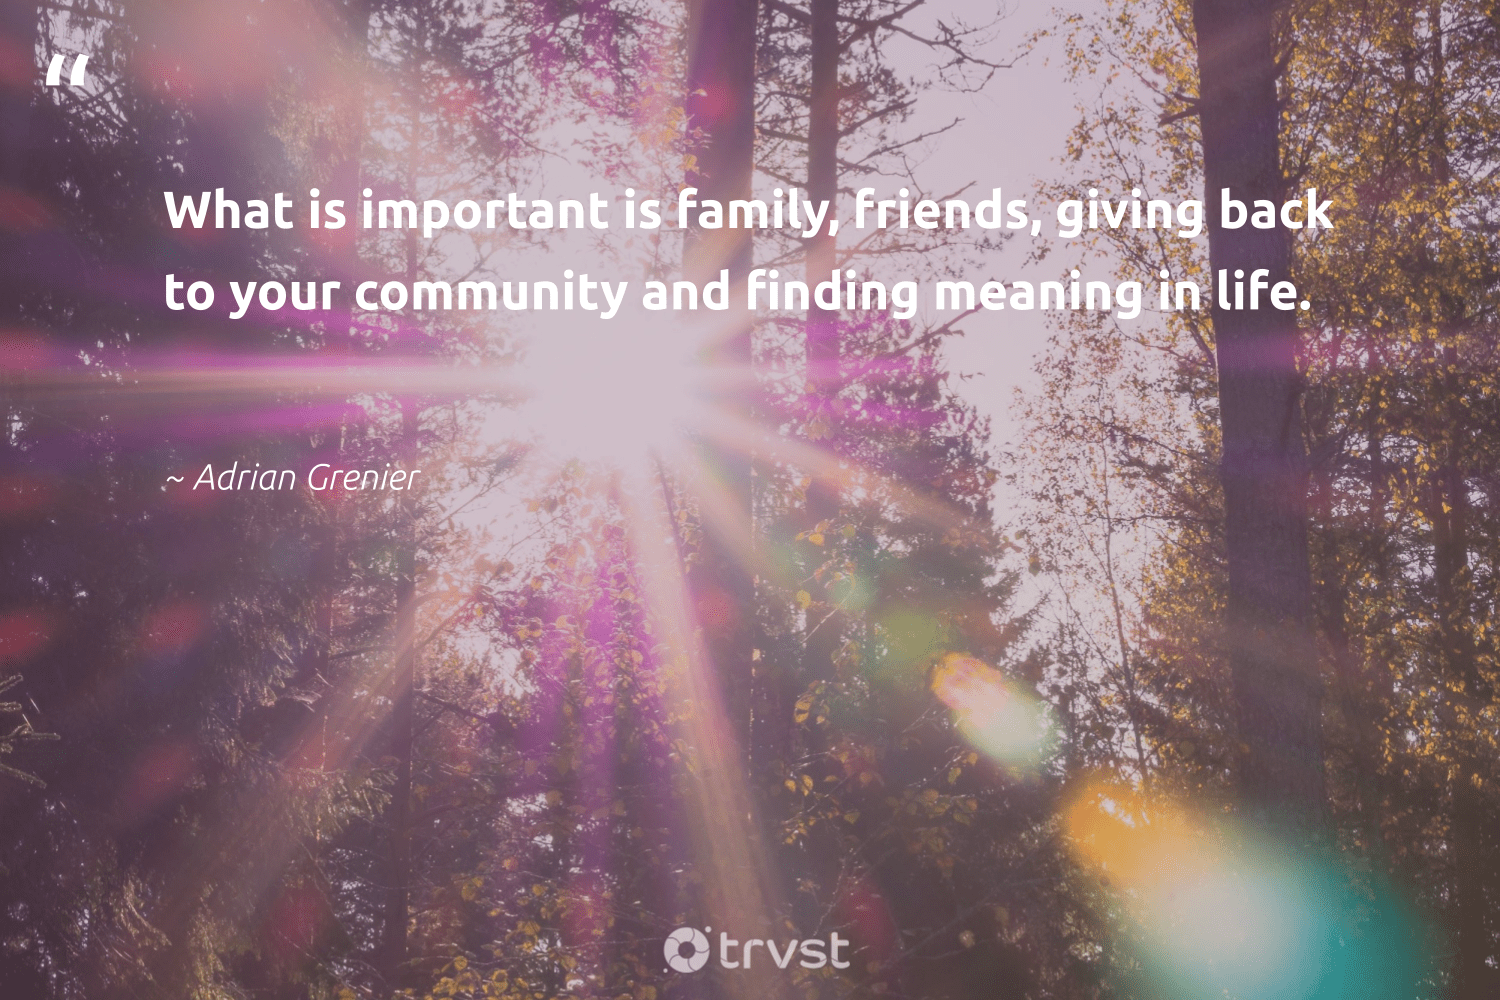 """""""What is important is family, friends, giving back to your community and finding meaning in life.""""  - Adrian Grenier #trvst #quotes #givingback #family #giveback #dogood #changemakers #giveforthefuture #takeaction #socialgood #itscooltobekind #togetherwecan"""